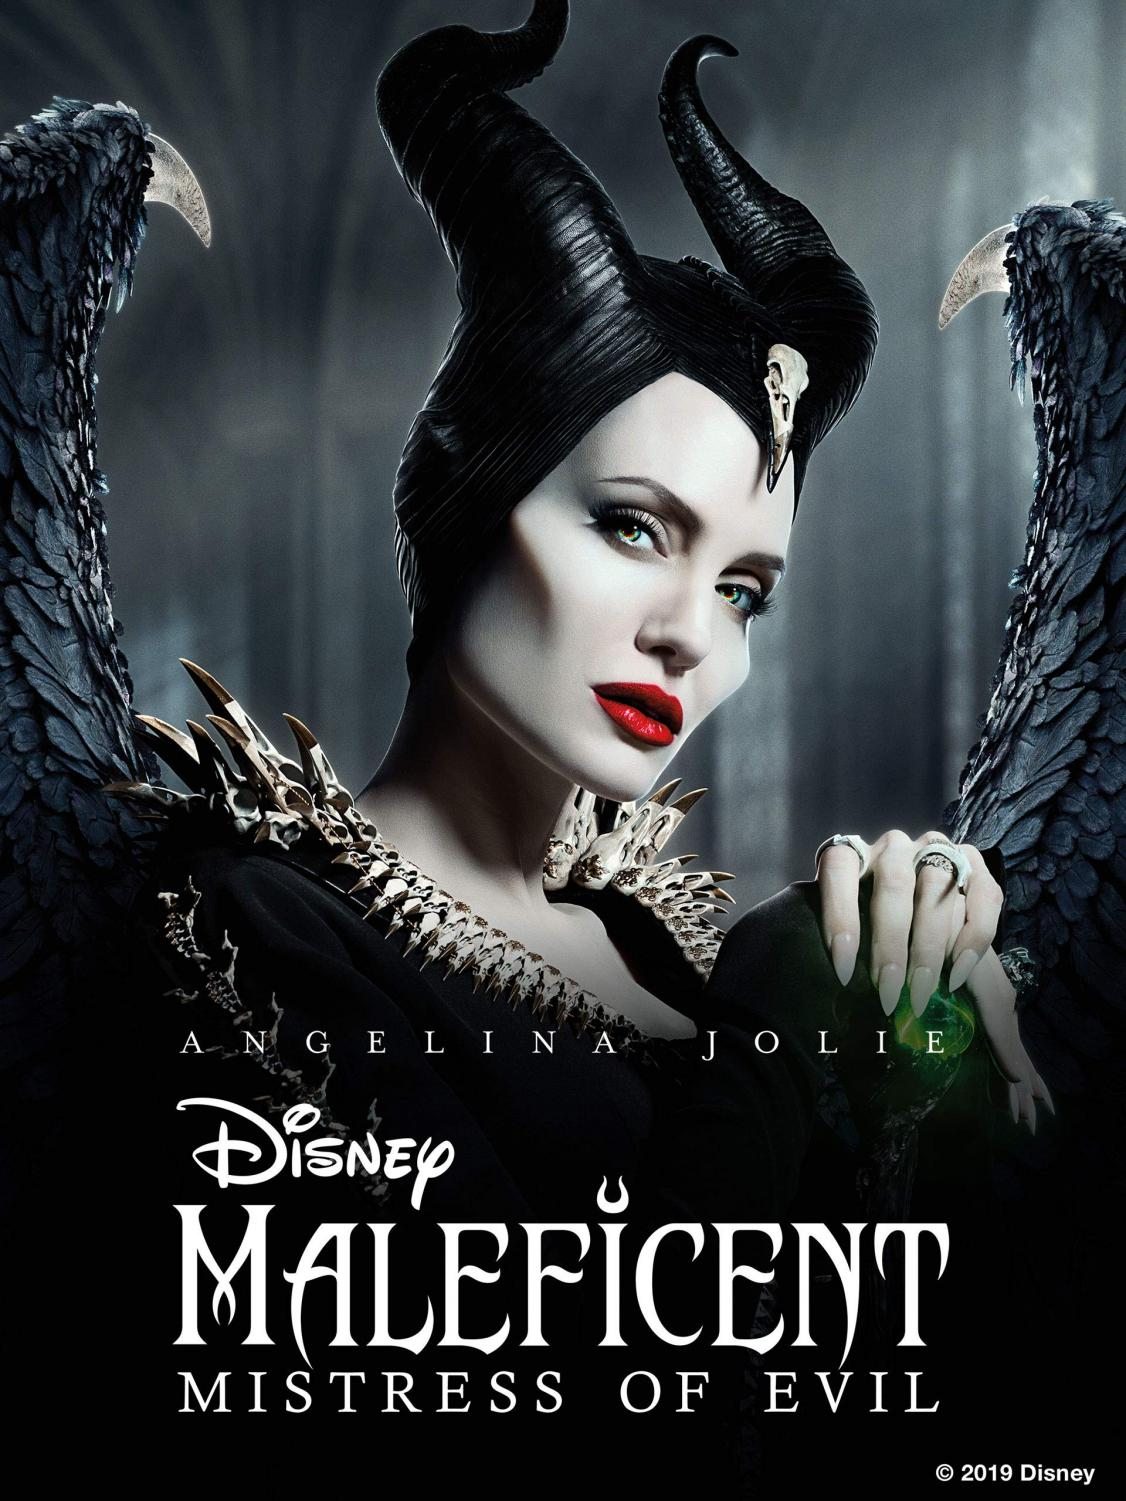 'Maleficent: Mistress of Evil' is the worth the watch